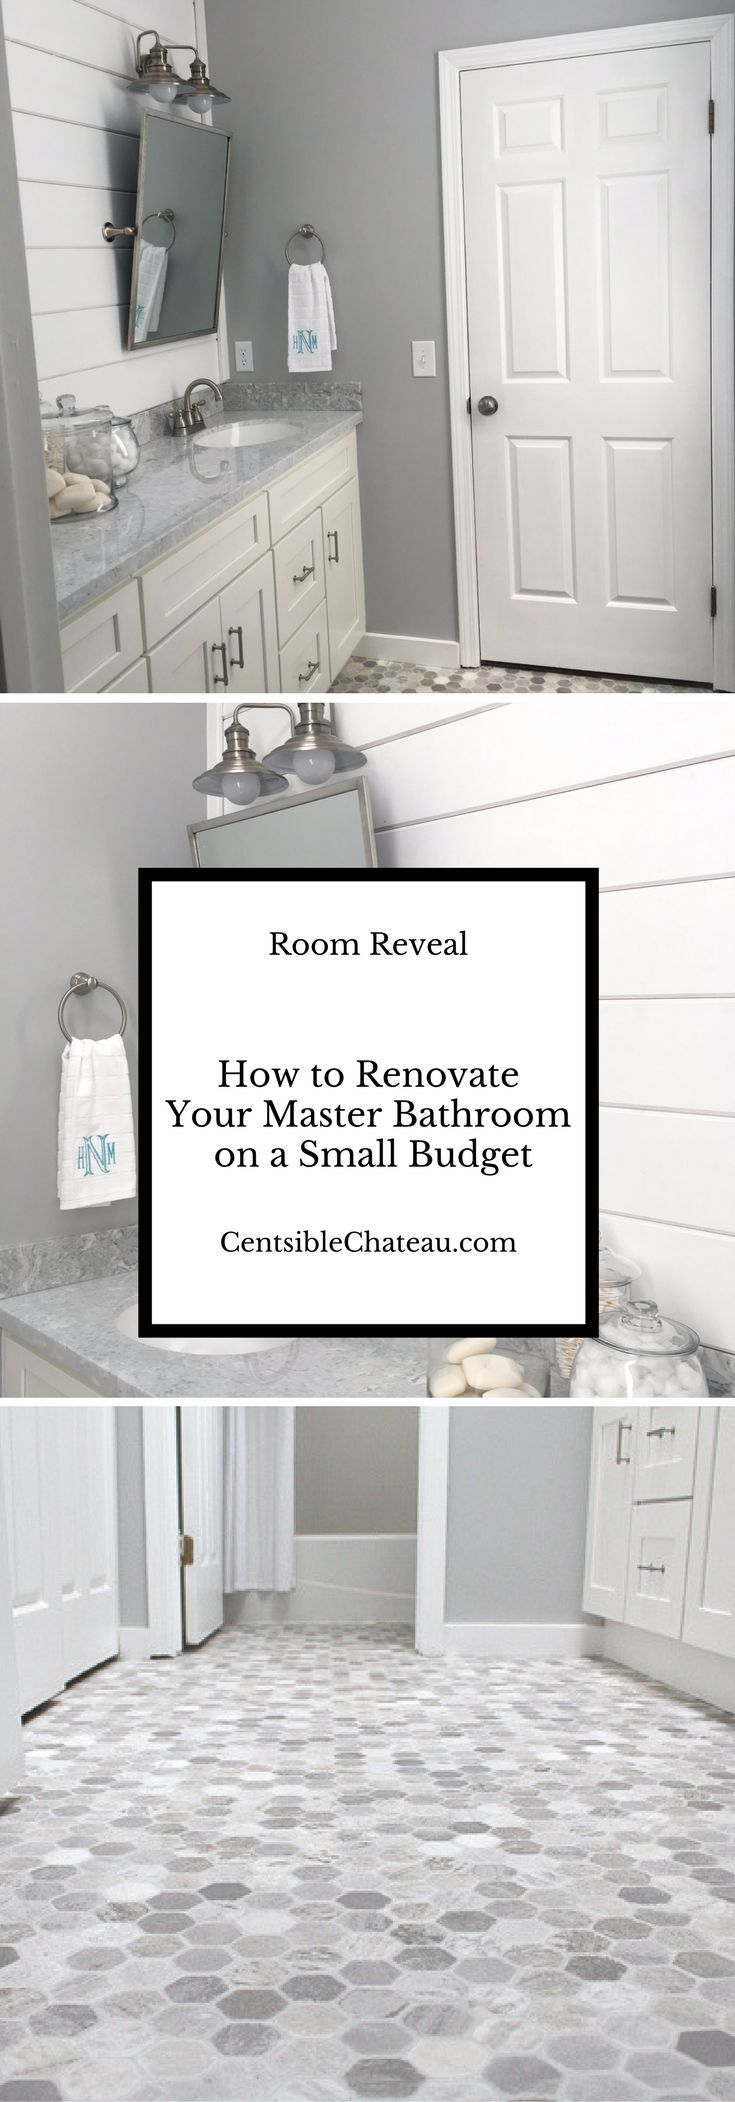 Bathroom Remodel|Master Bathroom|Bathroom Renovation|Bathroom decor|Bathroom Flooring